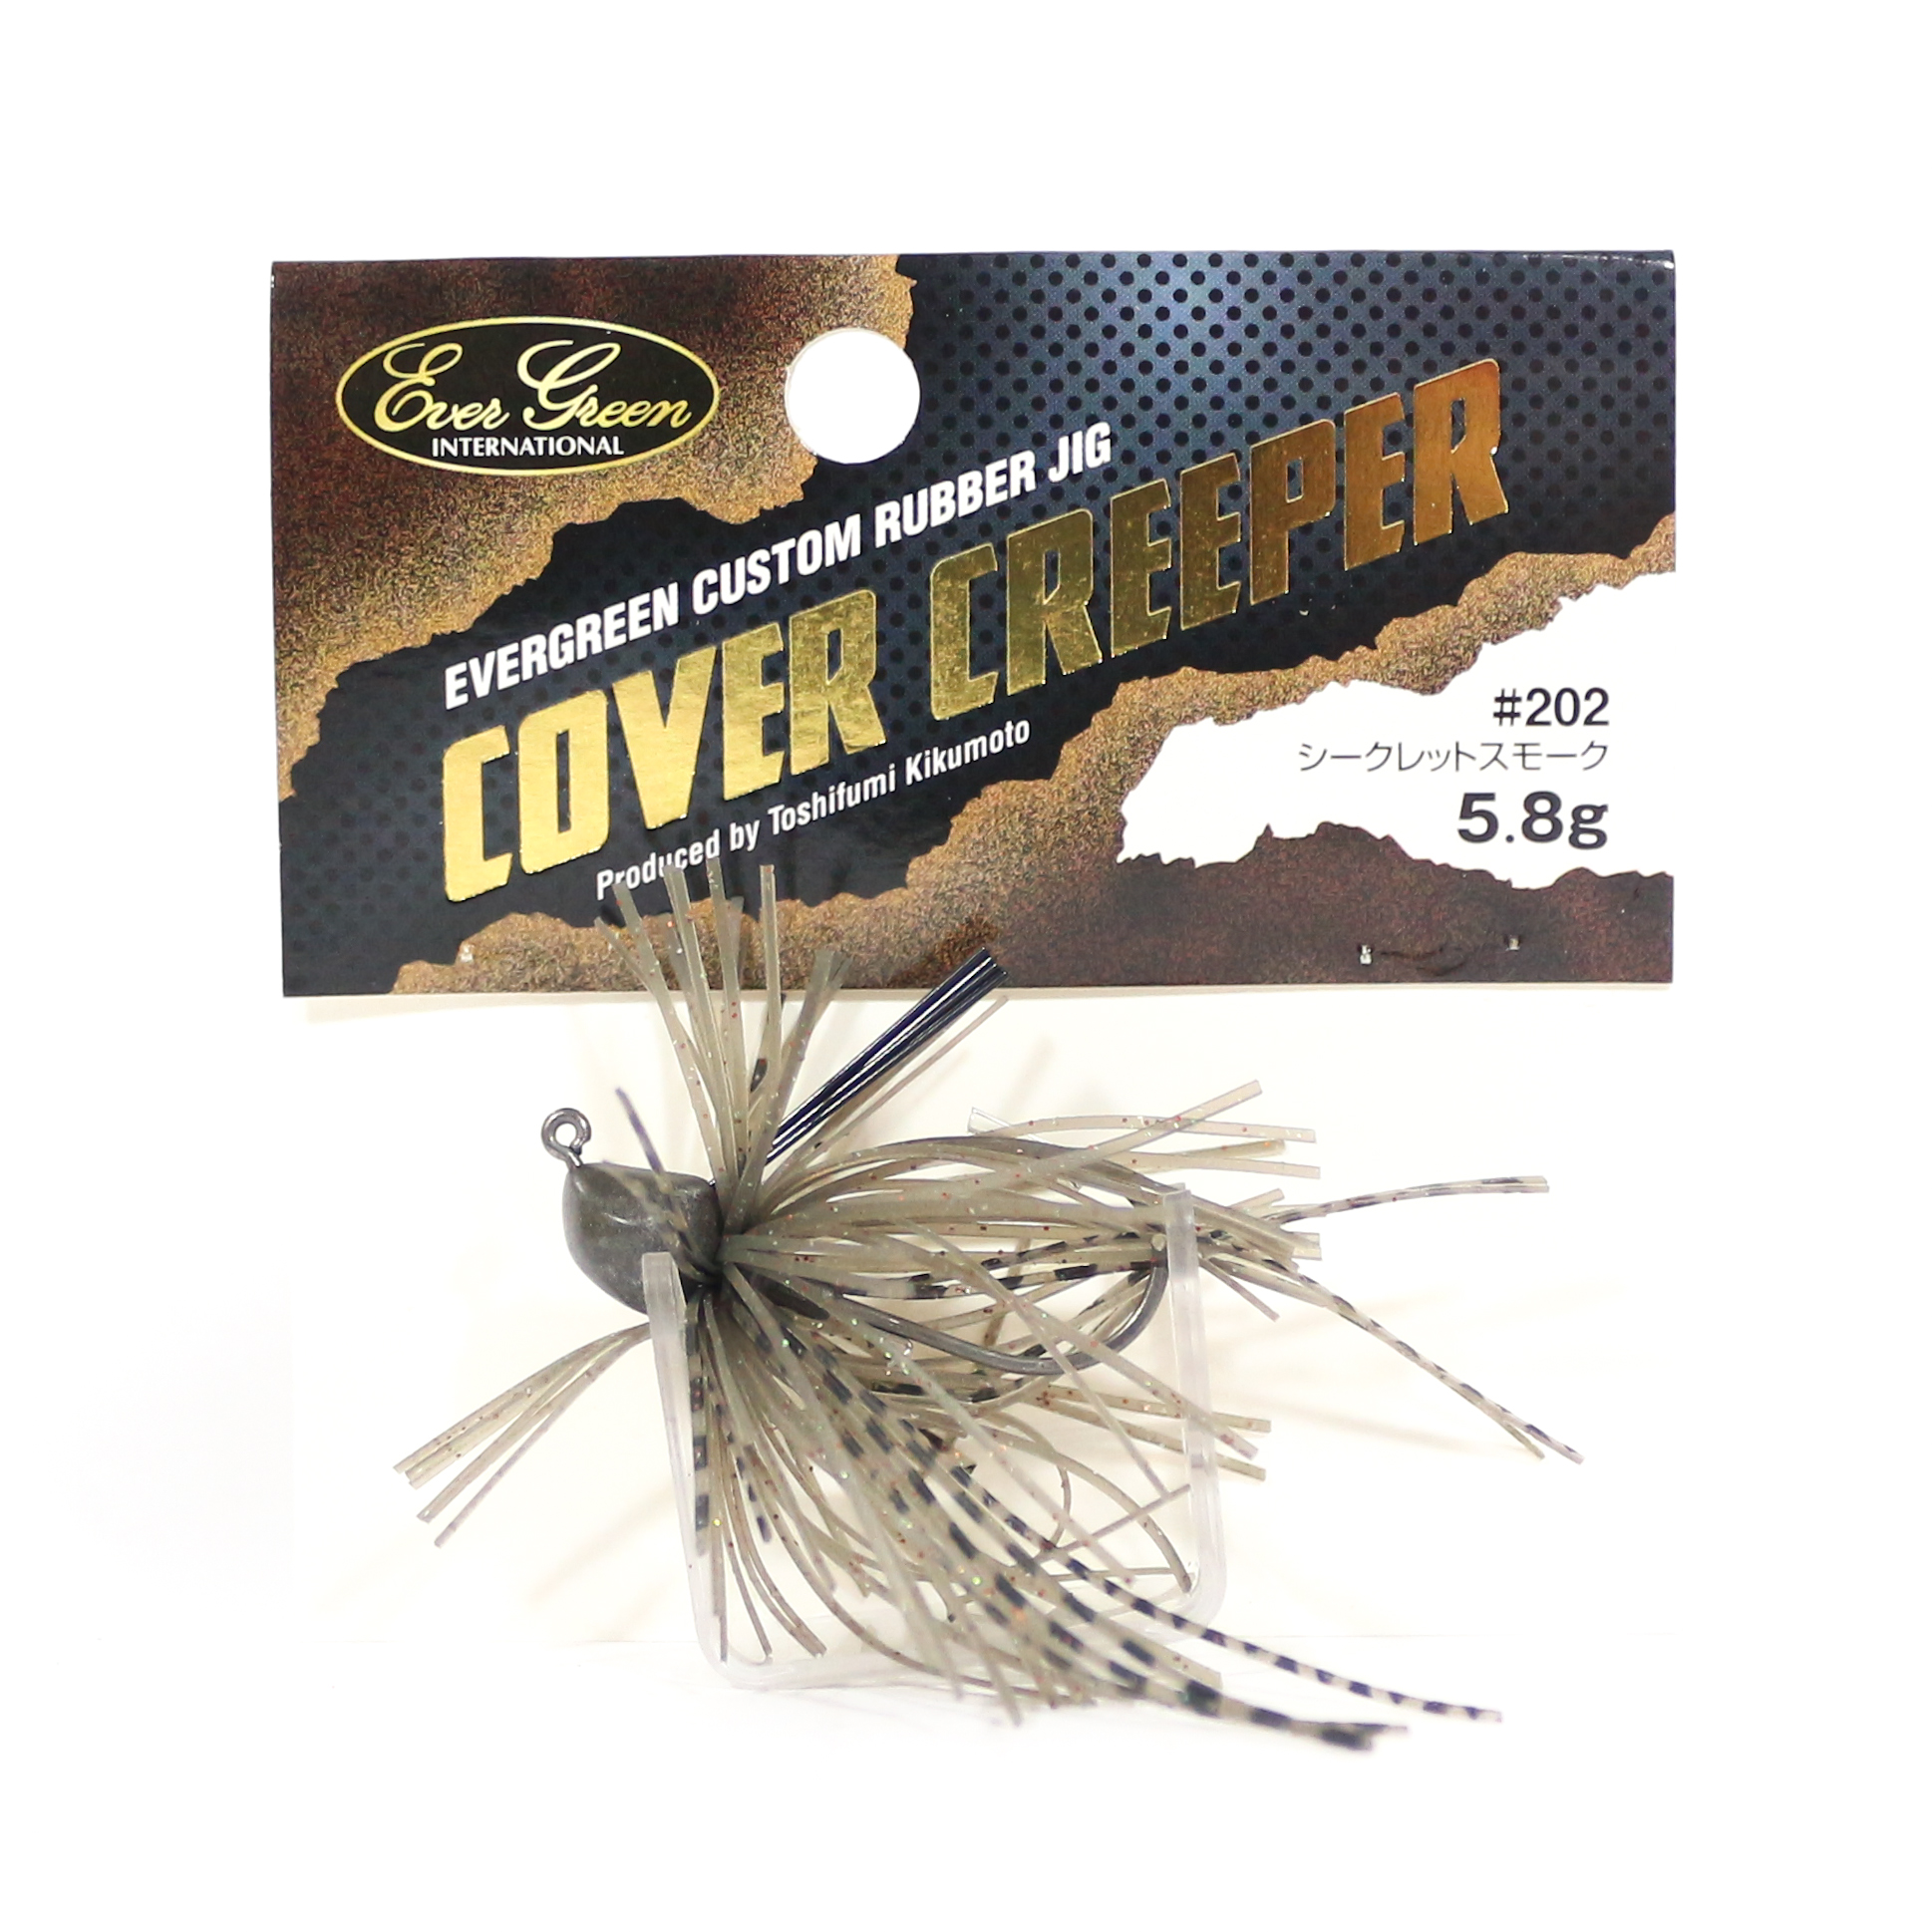 Evergreen Rubber Jig Cover Creeper 5.8g Sinking Lure 202 (3580)